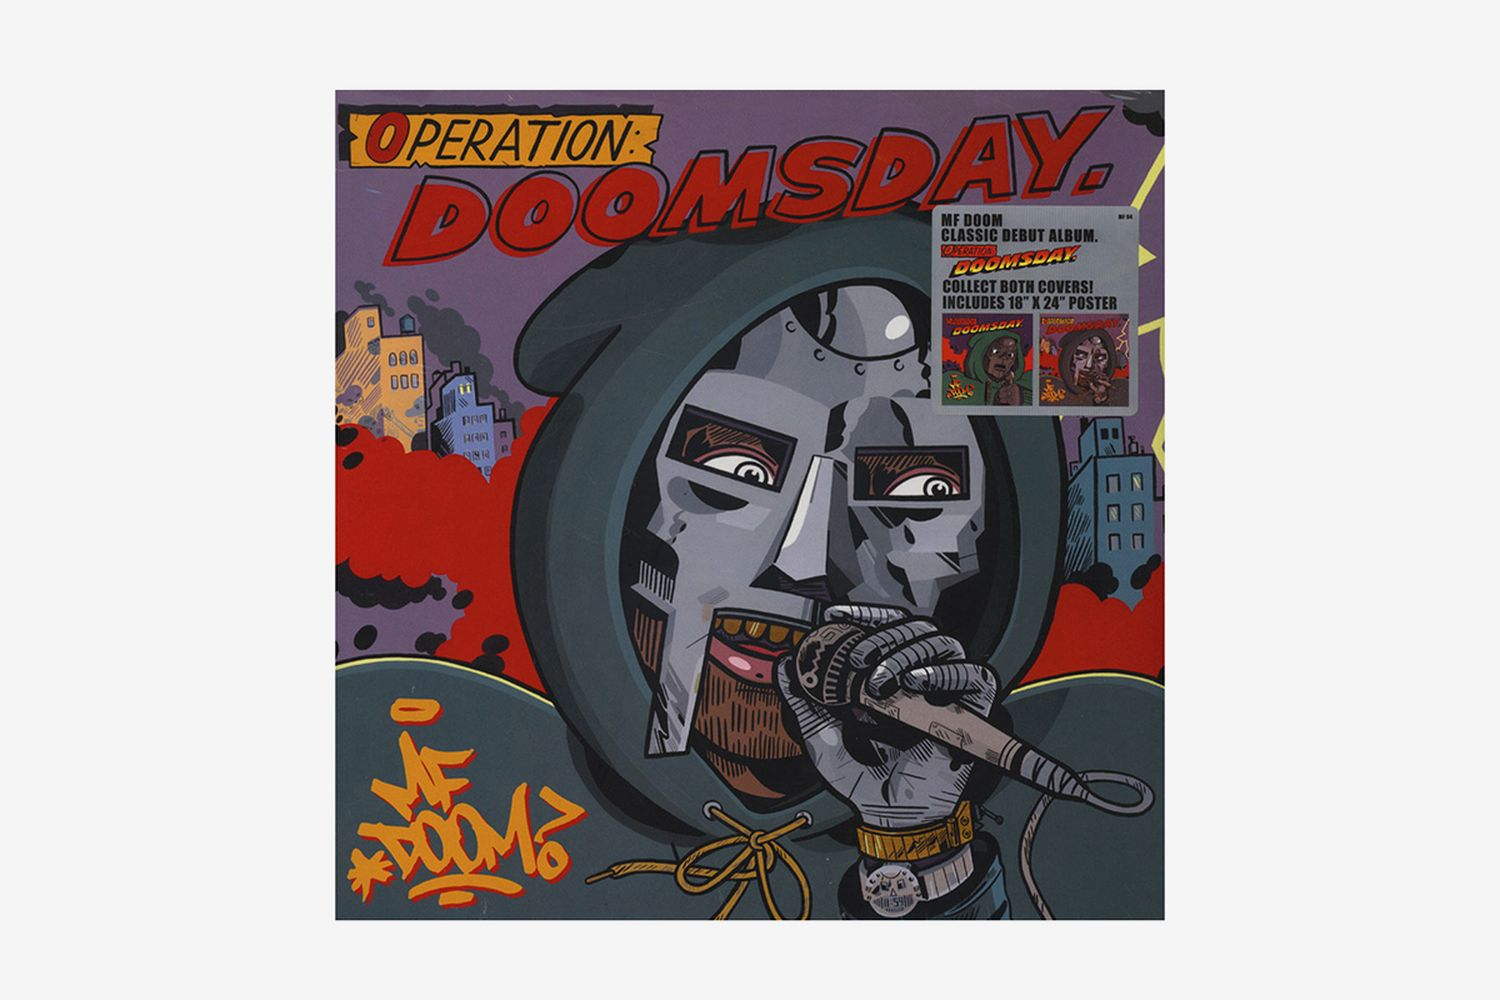 Operation: Doomsday Metal Face Cover Edition